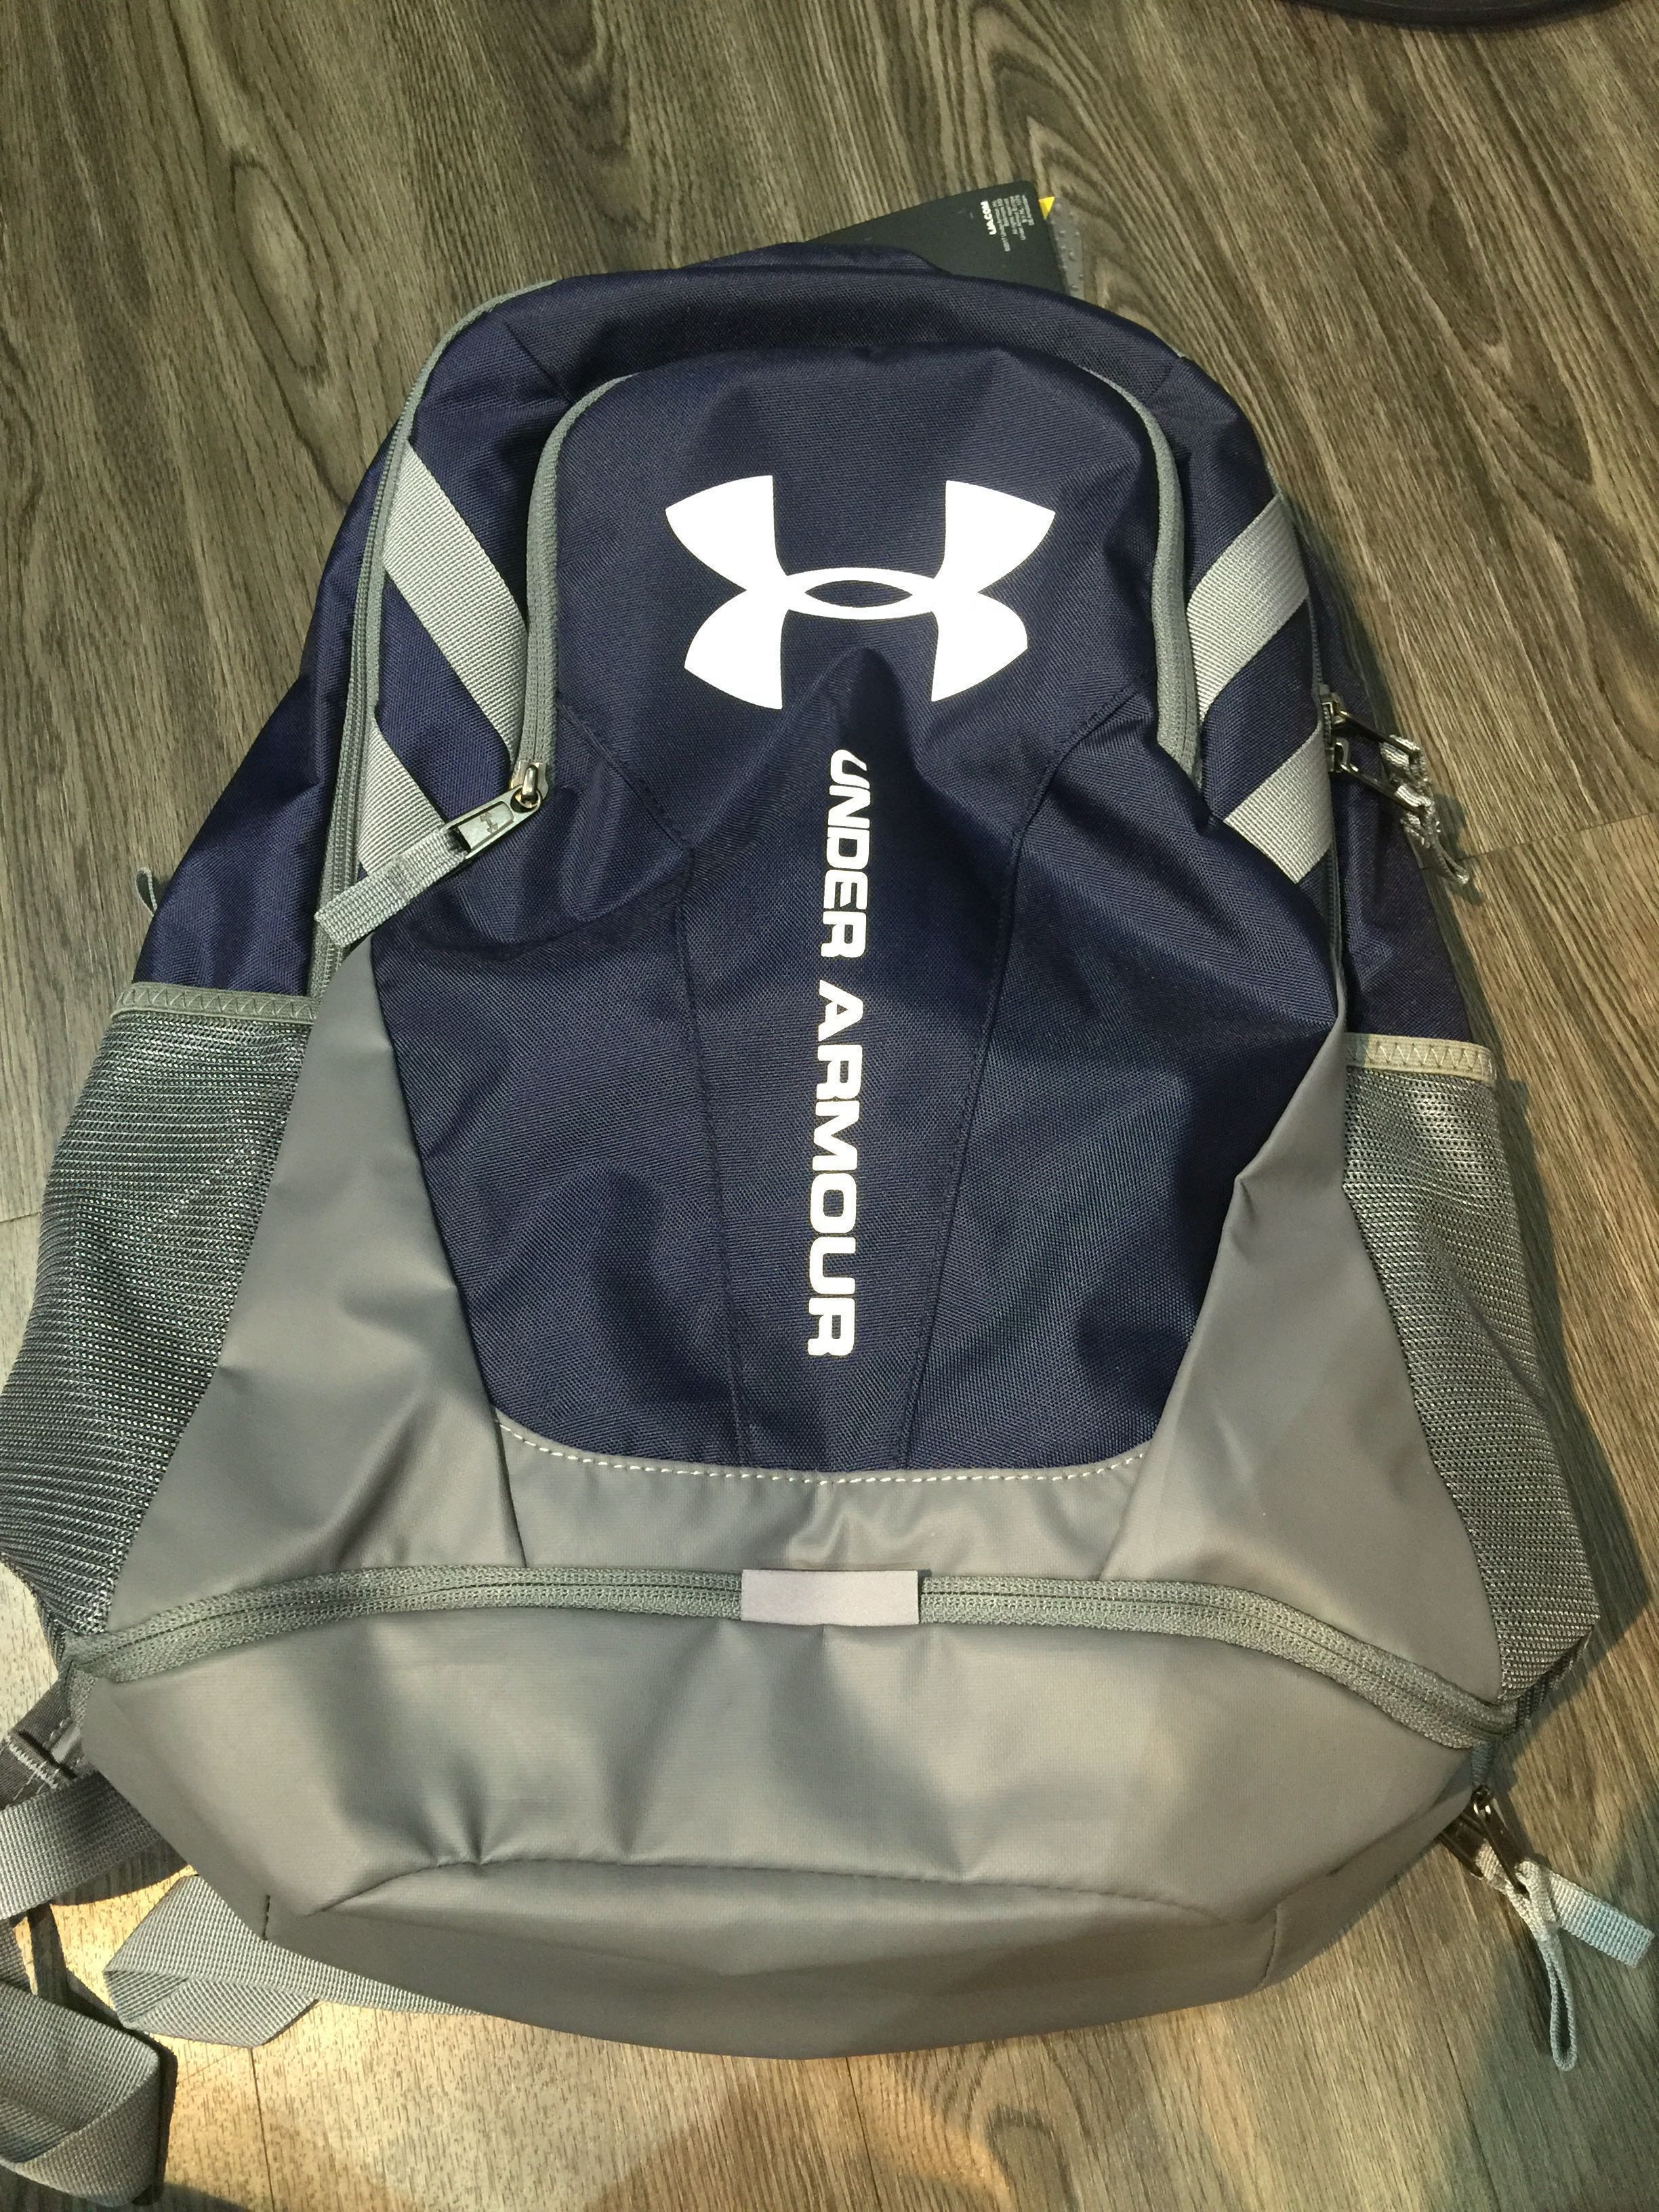 8dc6c5f609 Under Armour Hustle 3.0 Backpack BNWT Genuine